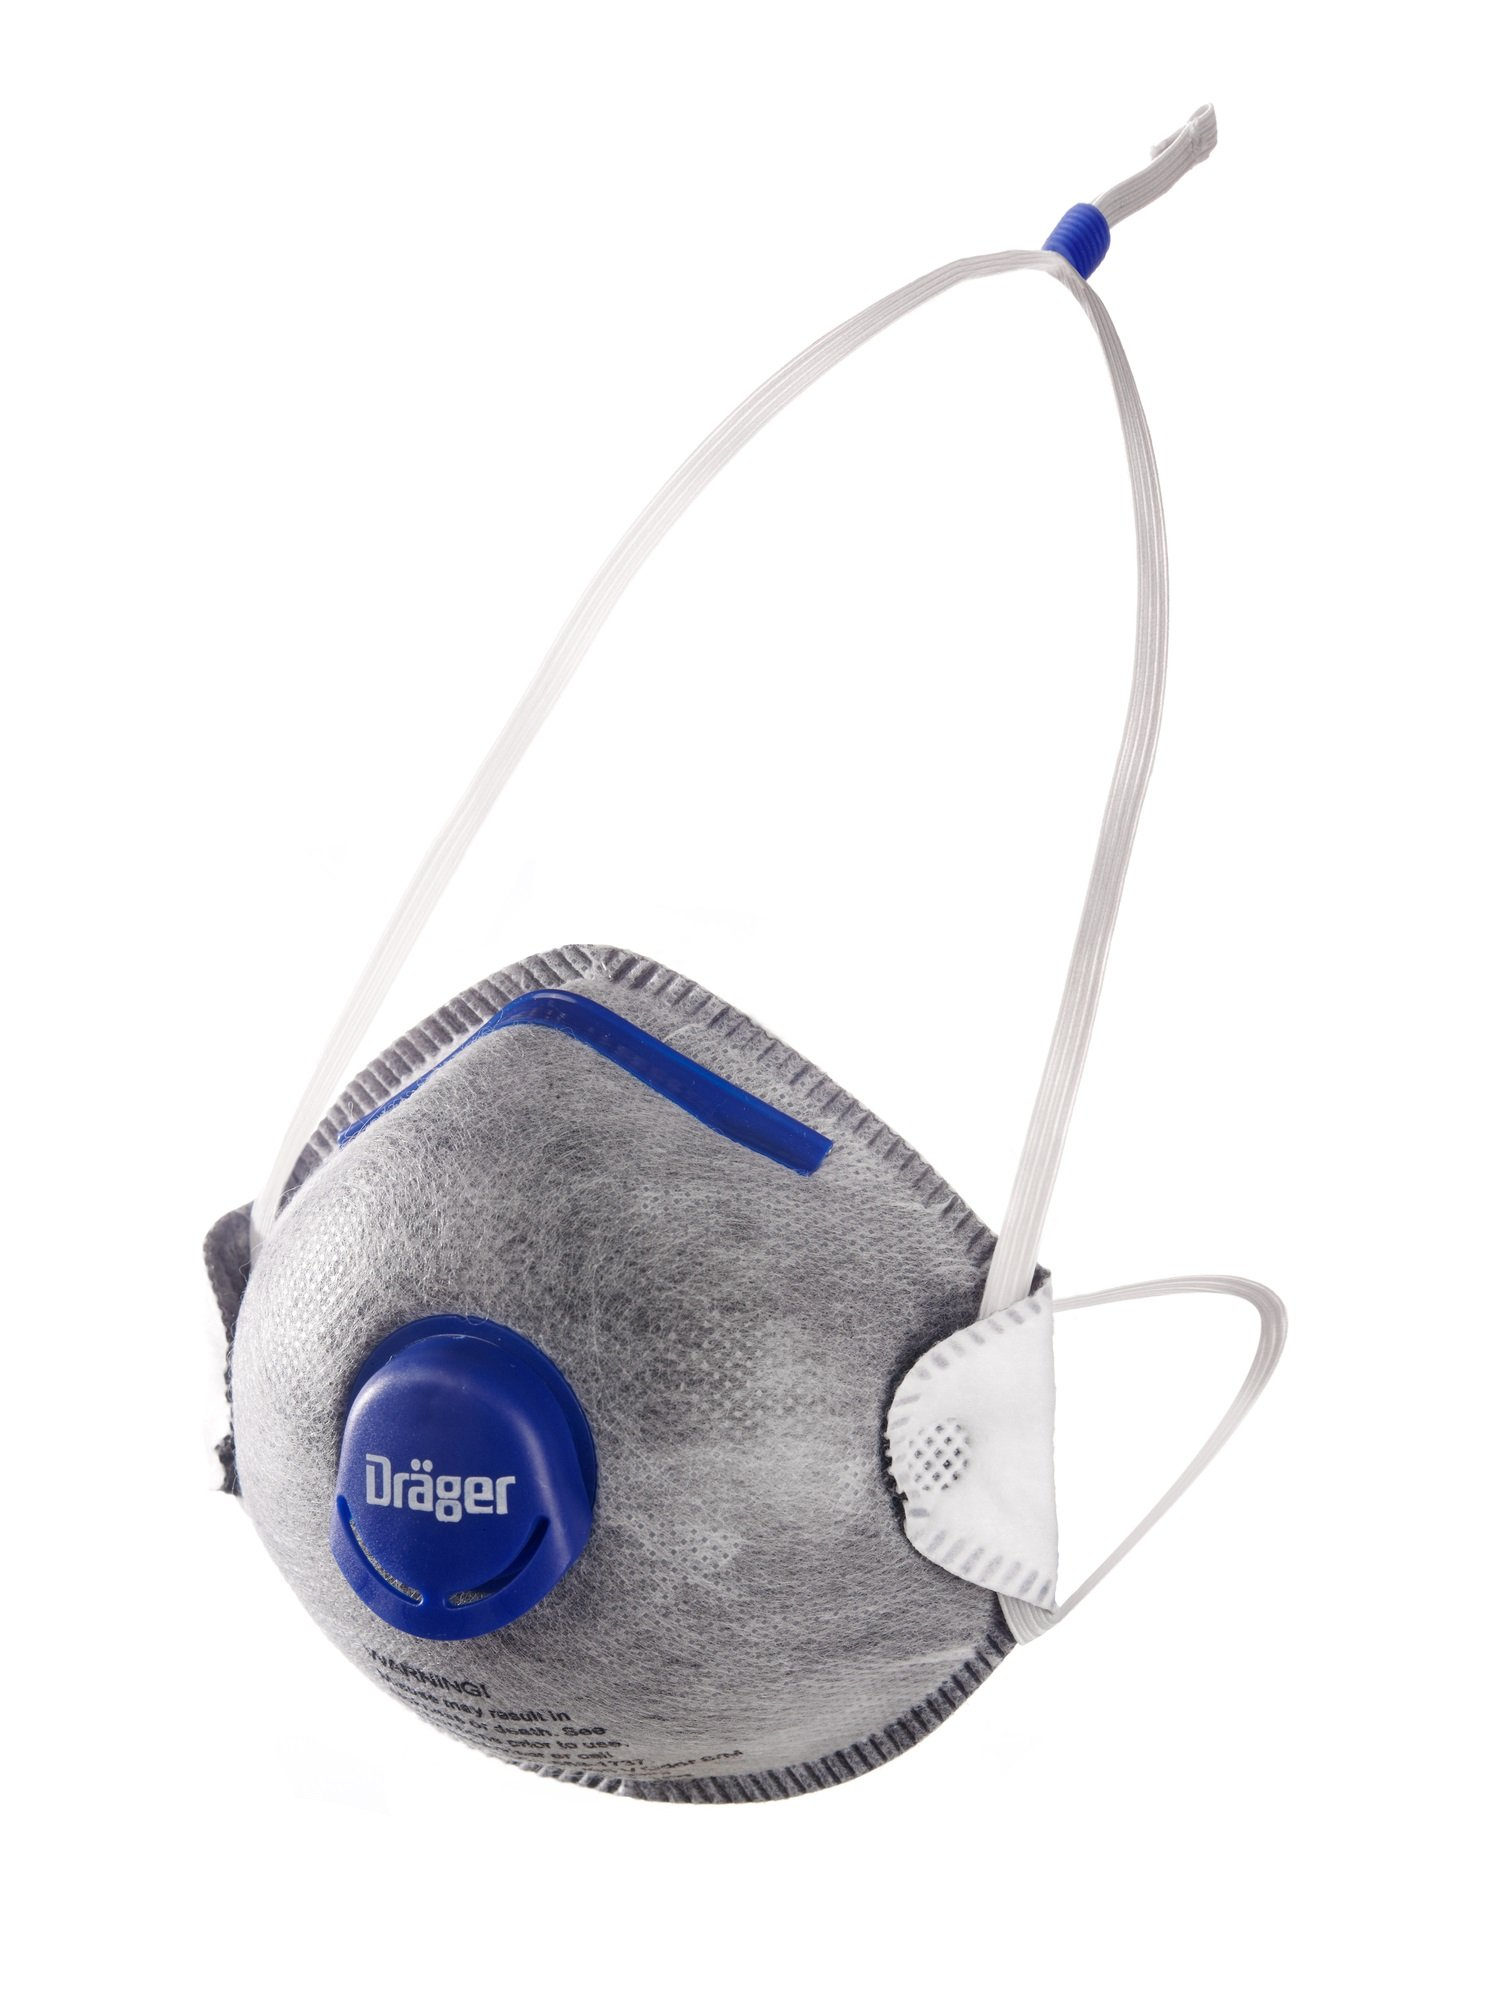 Dräger X-plore 1350 N95 Odor Particulate Respirator with Exhalation Valve, 10 Pack, Size S/M, NIOSH-Certified Dust Mask with Nuisance Level Organic Vapor Relief, Adjustable Head Harness by Dräger